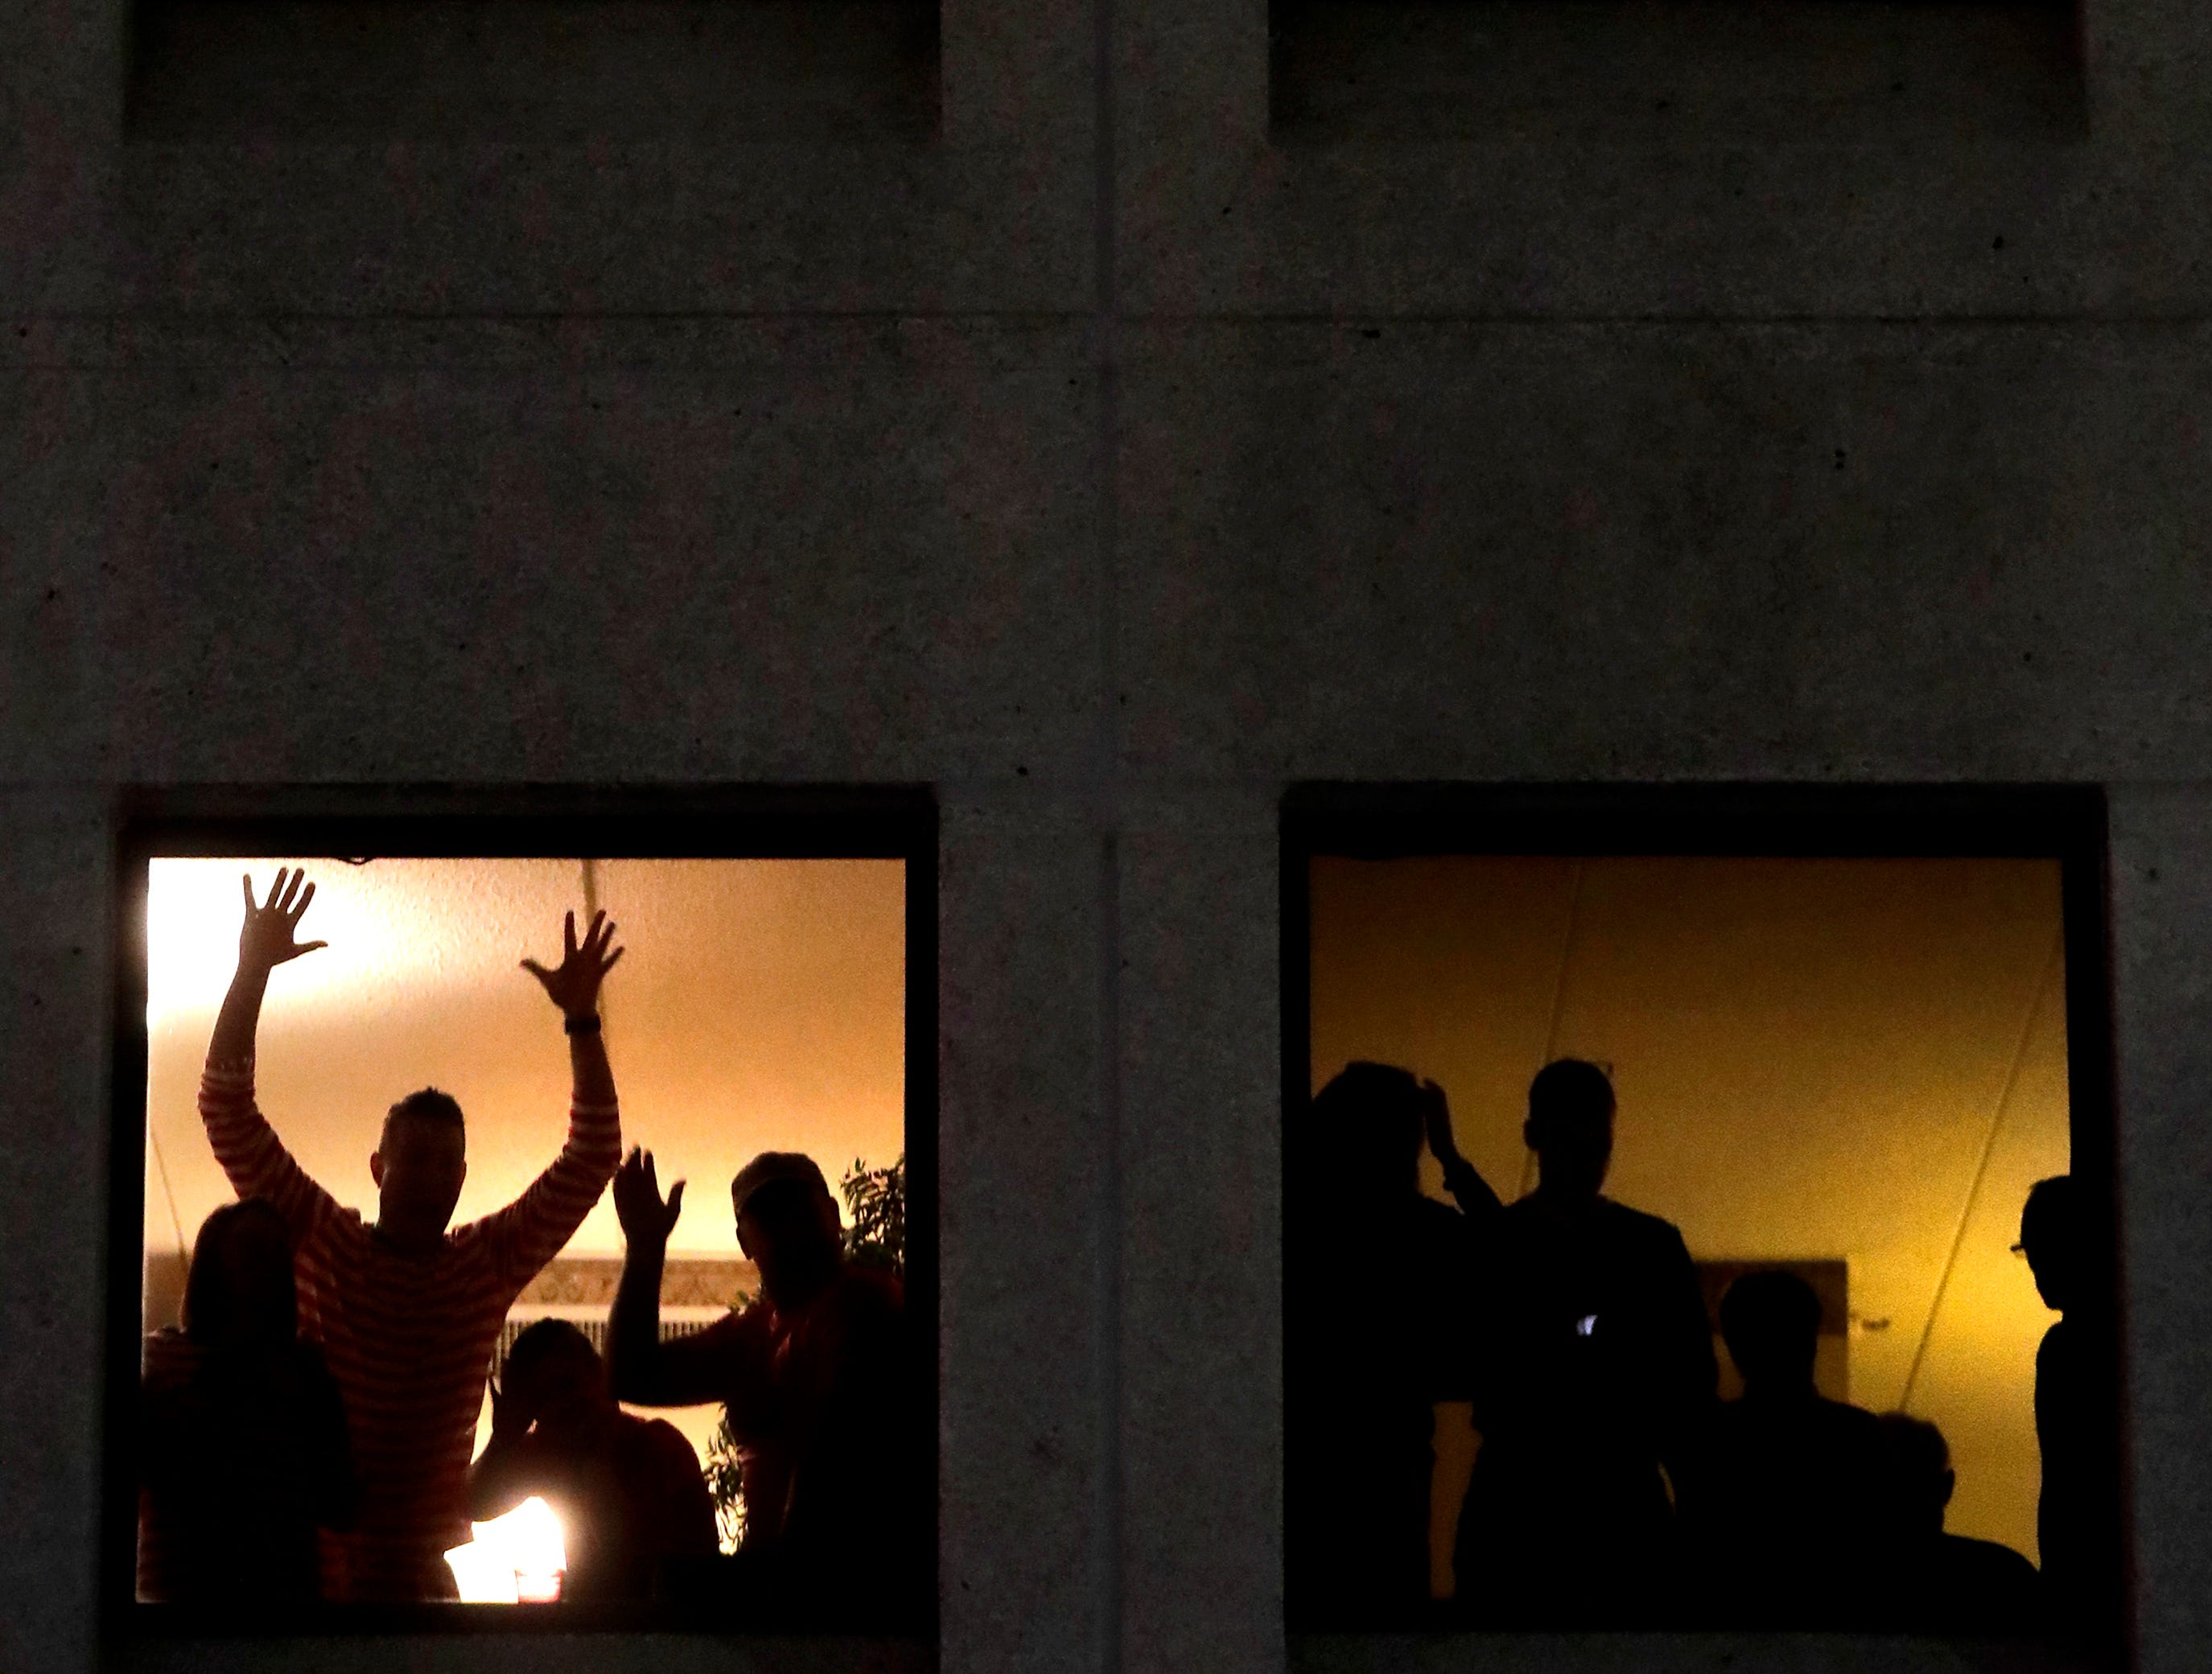 """Spectators watch fro the windows of the Red Lion Paper Valley Hotel during the 48th Annual Downtown Appleton Christmas Parade on Tuesday, Nov. 20, 2018 in Appleton, Wis. This year's theme was """"Home for the Holidays."""" Wm. Glasheen/USA TODAY NETWORK-Wisconsin."""